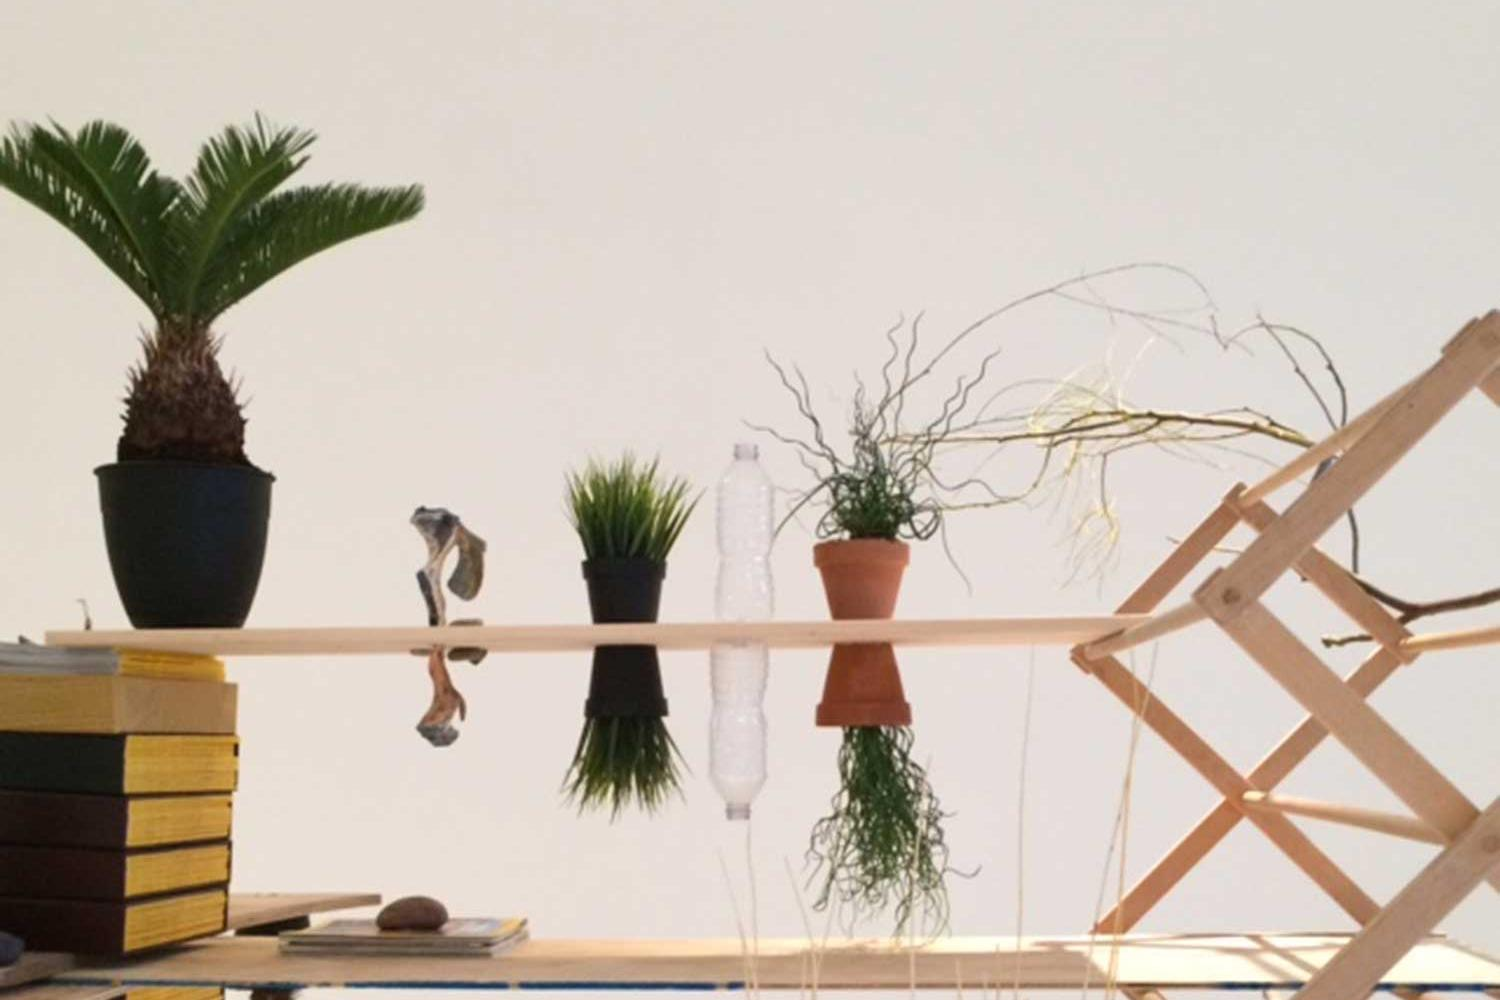 Wooden structure with plants on top and mirror images below